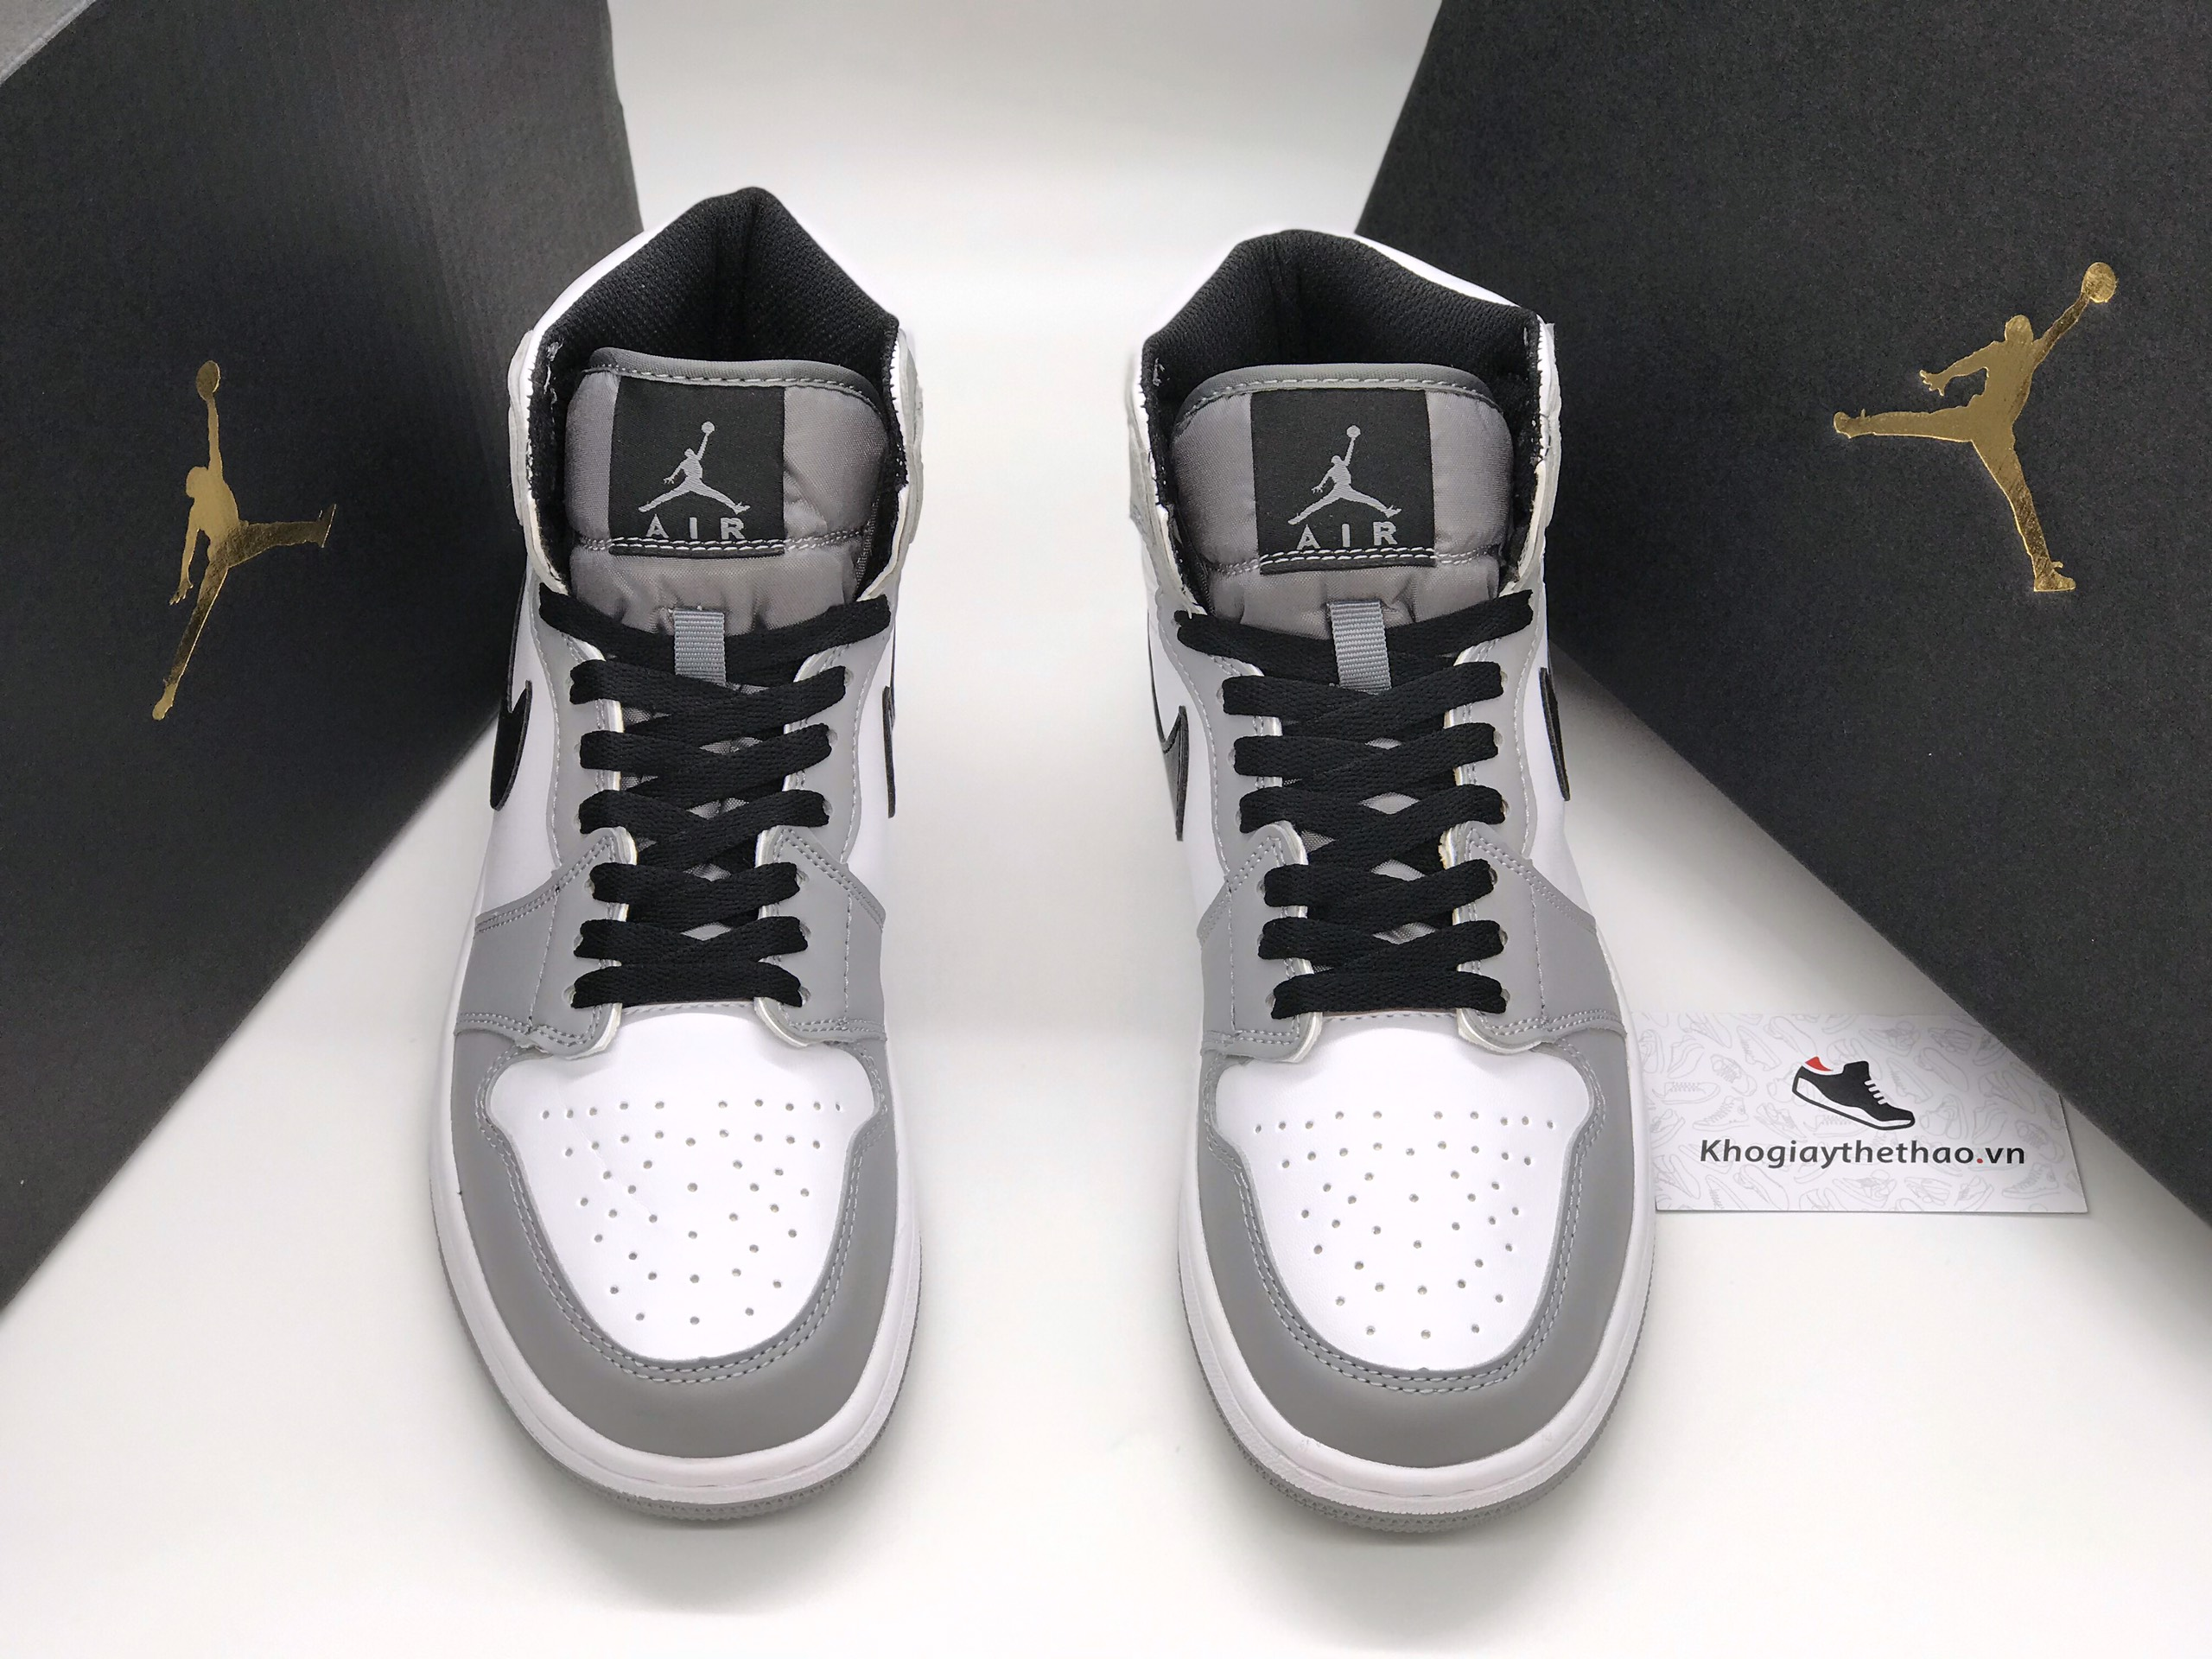 Giày Nike Air Jordan 1 High Light Smoke Grey rep